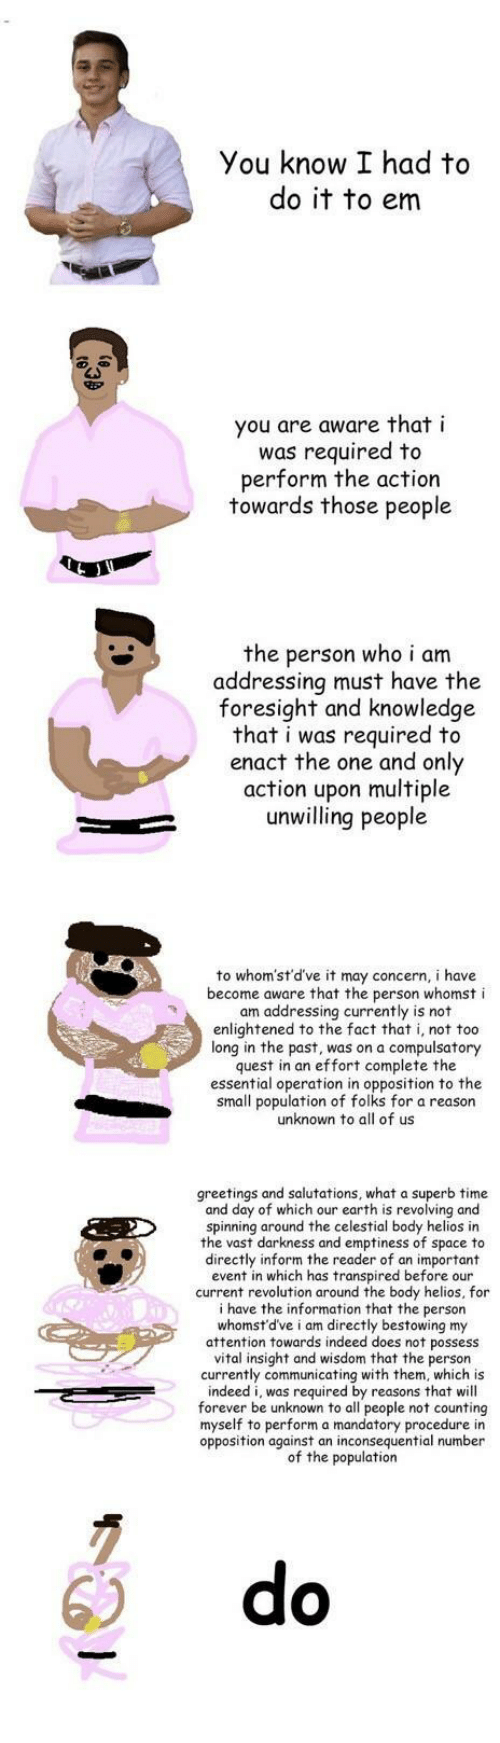 salutations: You know I had to  do it to em  you are aware that i  was required to  perform the action  towards those people  the person who i am  addressing must have the  foresight and knowledge  that i was required to  enact the one and only  action upon multiple  unwilling people  to whom'st'd've it may concern, i have  become aware that the person whomst i  am addressing currently is not  enlightened to the fact that i, not too  long in the past, was on a compulsatory  quest in an effort complete the  essential operation in opposition to the  small population of folks for a reason  unknown to all of us  greetings and salutations, what a superb time  and day of which our earth is revolving and  spinning around the celestial body helios in  the vast darkness and emptiness of space to  directly inform the reader of an important  event in which has transpired before our  current revolution around the body helios, for  i have the information that the person  whomst'd've i am directly bestowing my  attention towards indeed does not possess  vital insight and wisdom that the person  currently communicating with them, which is  indeed i, was required by reasons that will  forever be unknown to all people not counting  myself to perform a mandatory procedure in  opposition against an inconsequential number  of the population  6) do